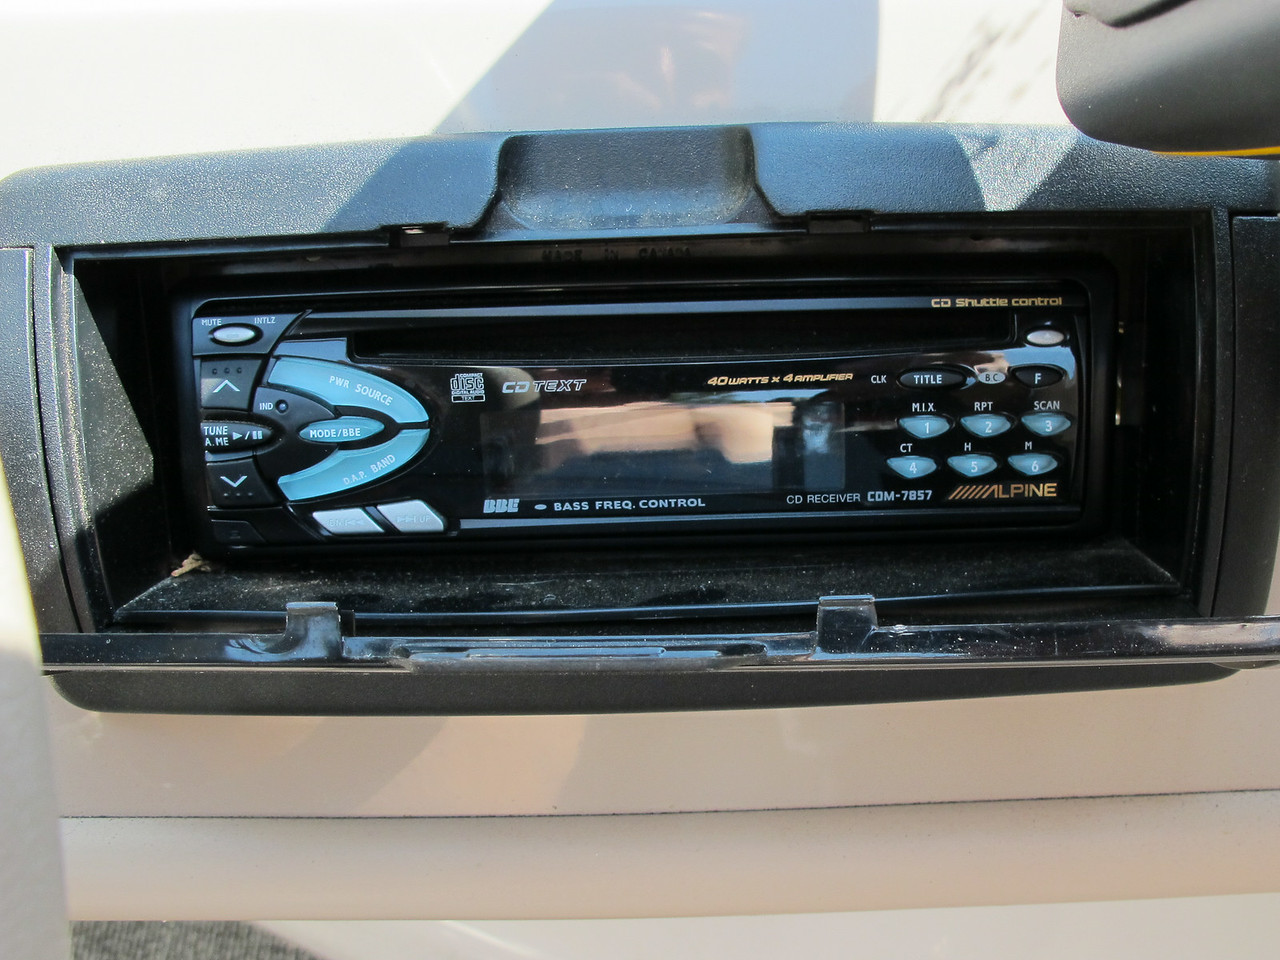 Close up of the stereo.